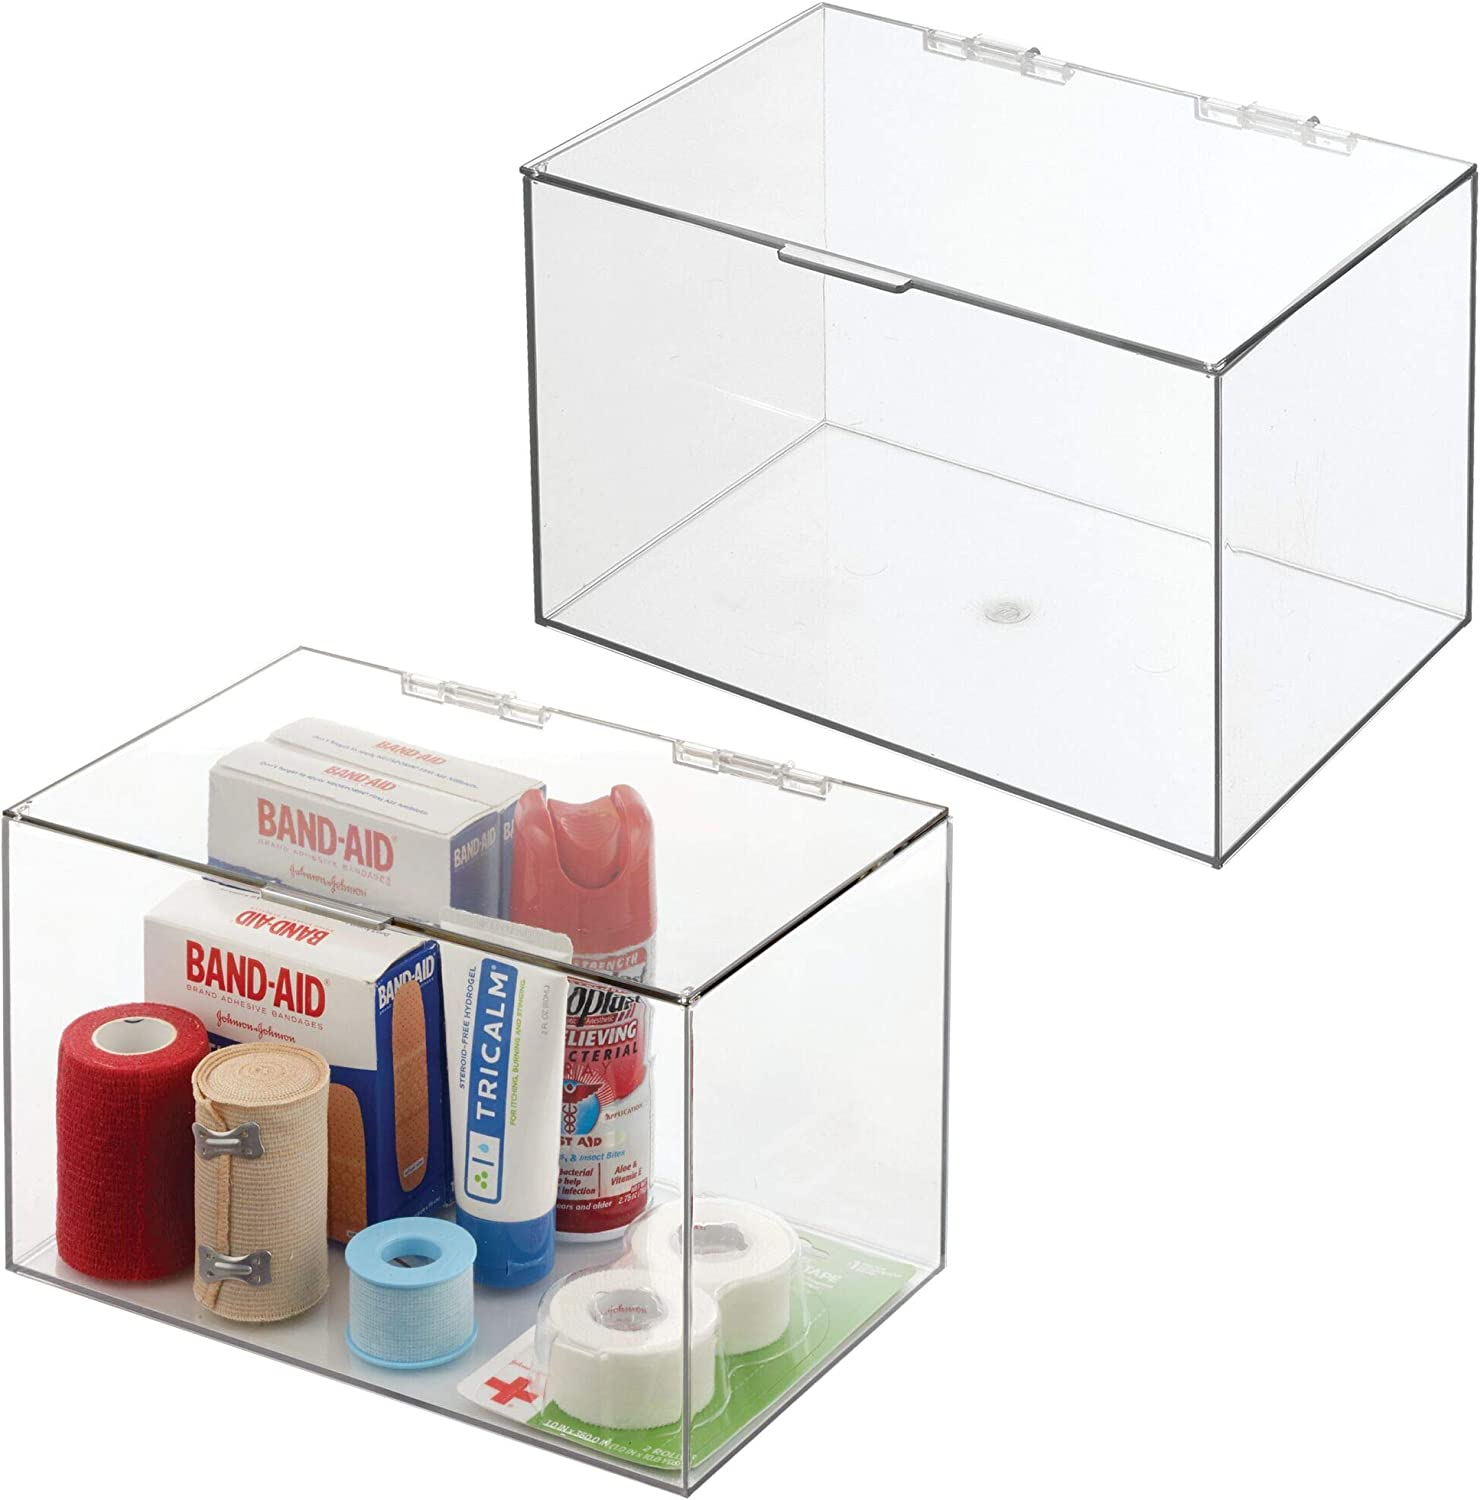 mDesign Bathroom Plastic Stackable Storage Display Container Box with Hinged Lid - Cabinet, Vanity Organizer for Toiletries, Makeup, First Aid, Hair Accessories, 6.5